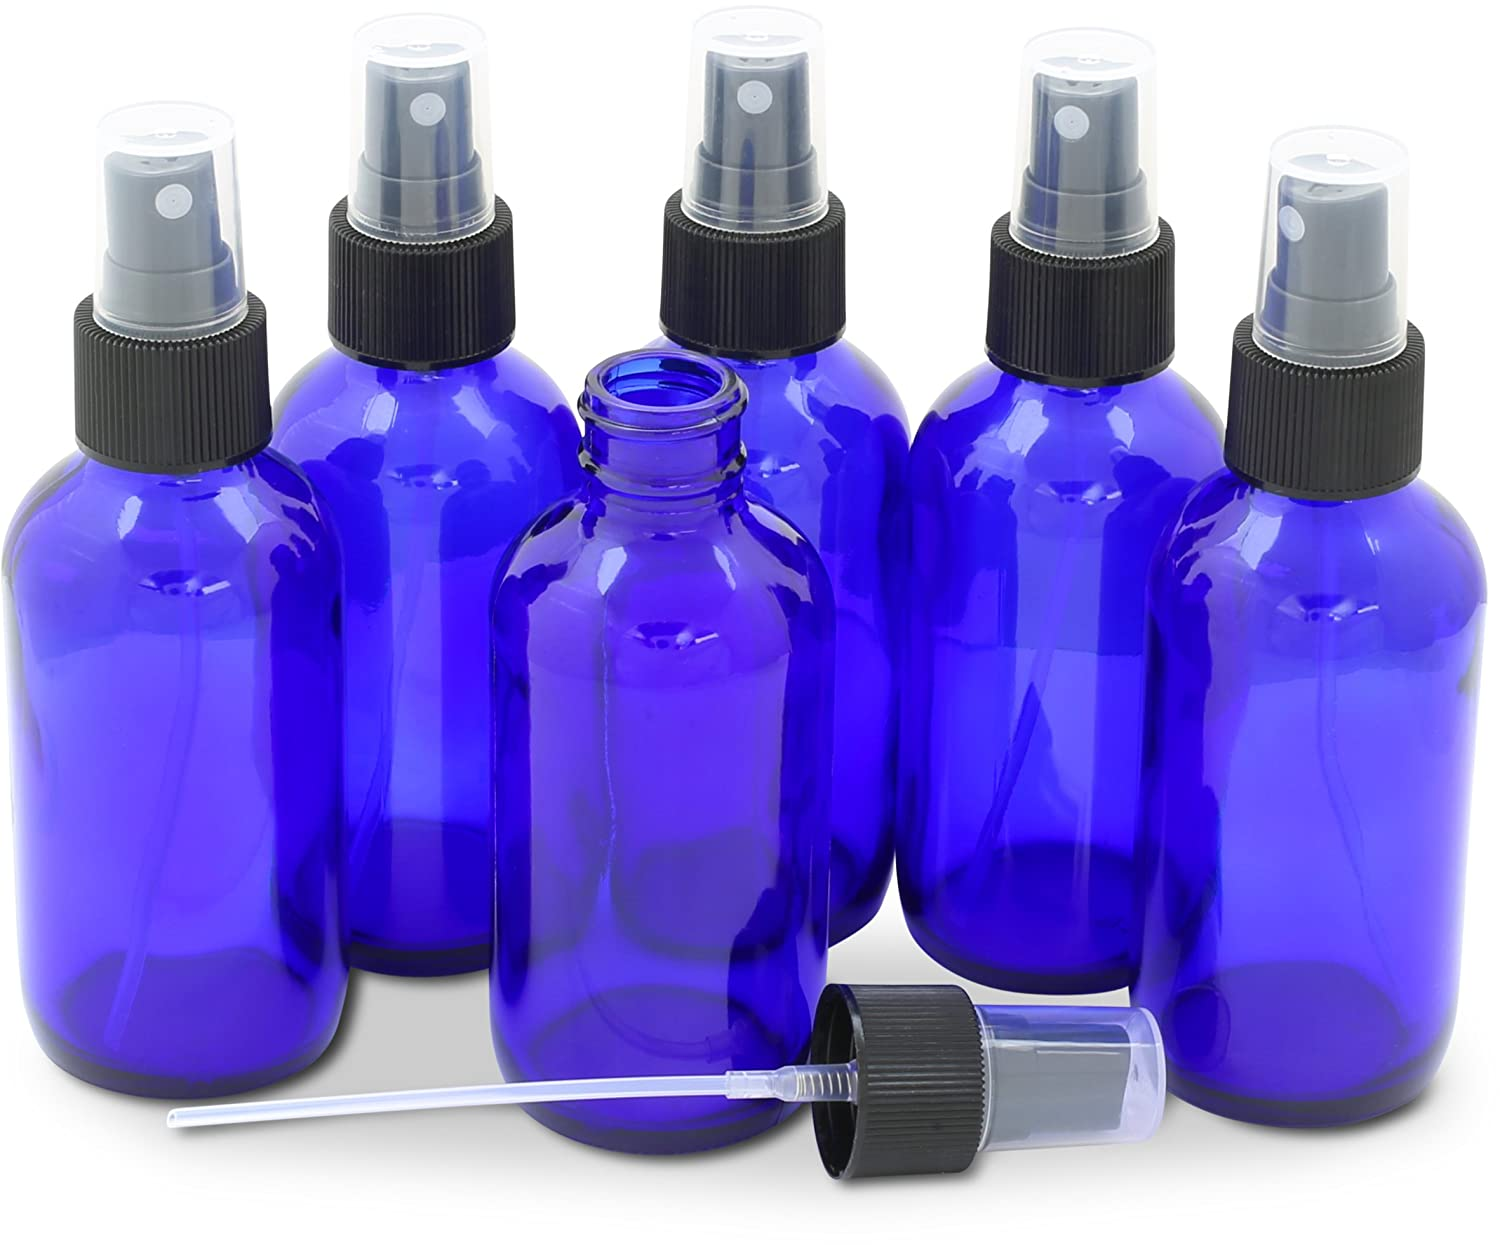 Simple Houseware 6PK 4oz Cobalt Blue Glass Bottles with Mist Sprayer